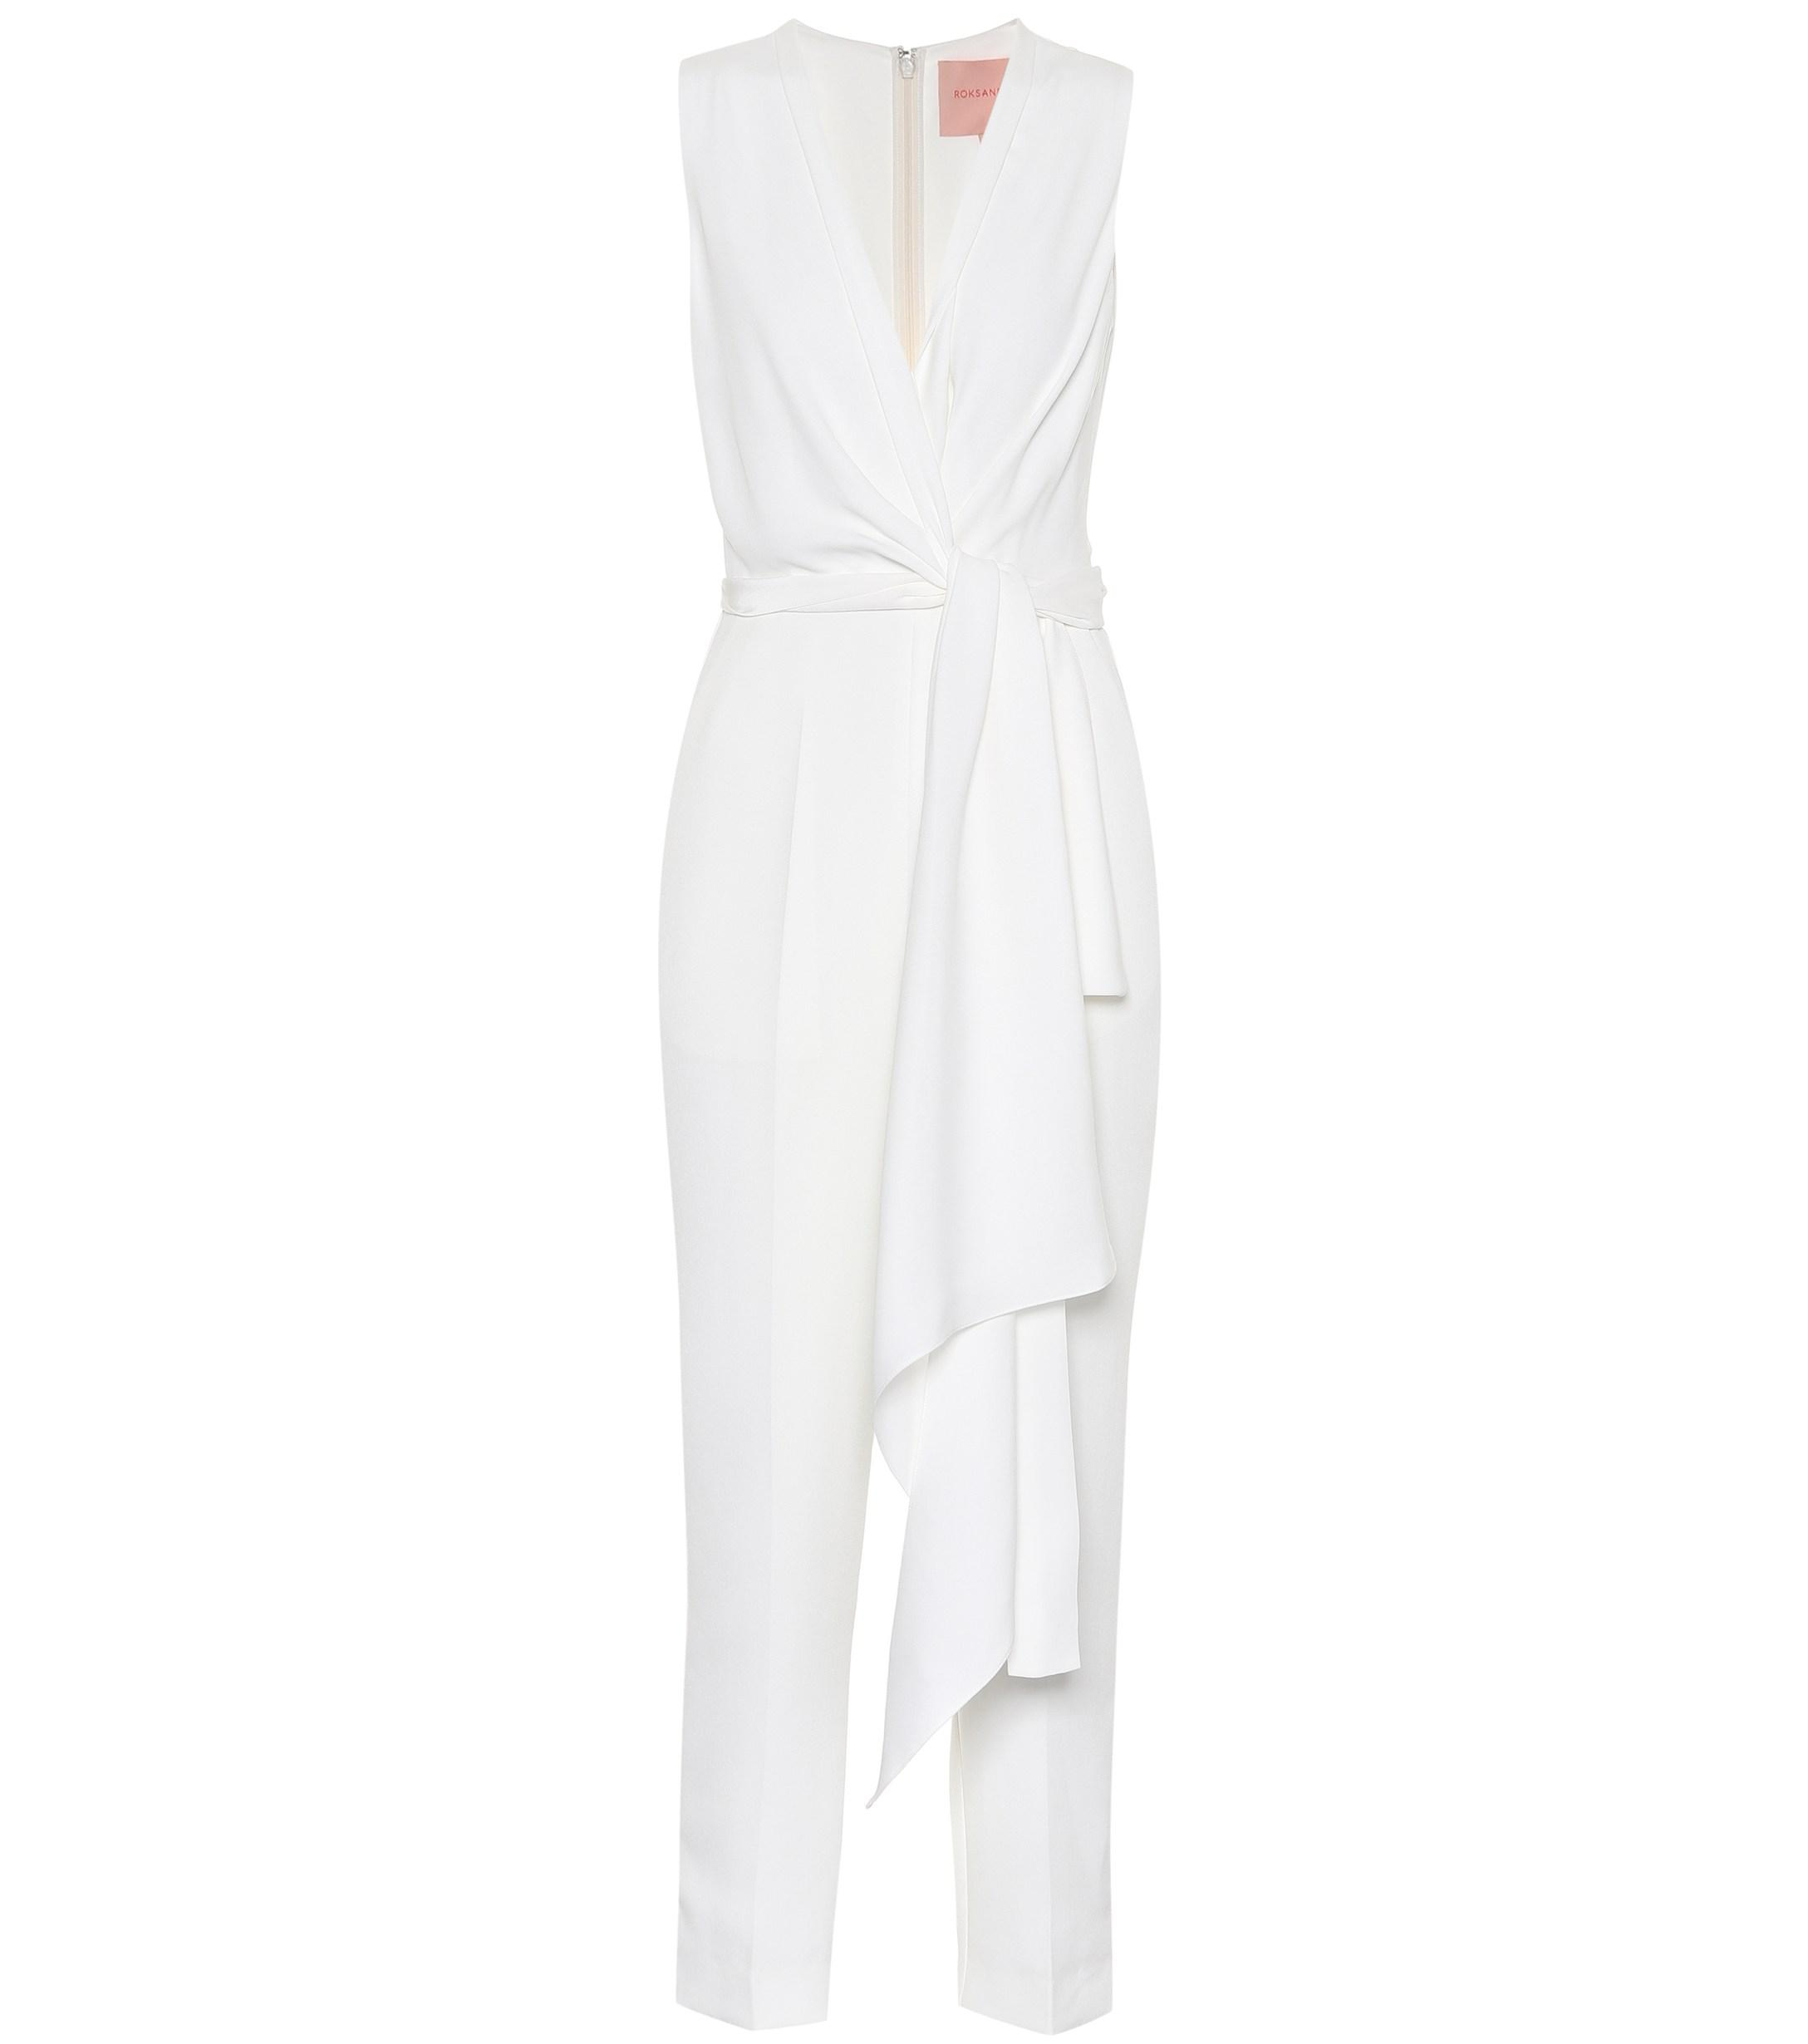 2688318ca53 Lyst - ROKSANDA Rokuro Bridal Silk-blend Jumpsuit in White